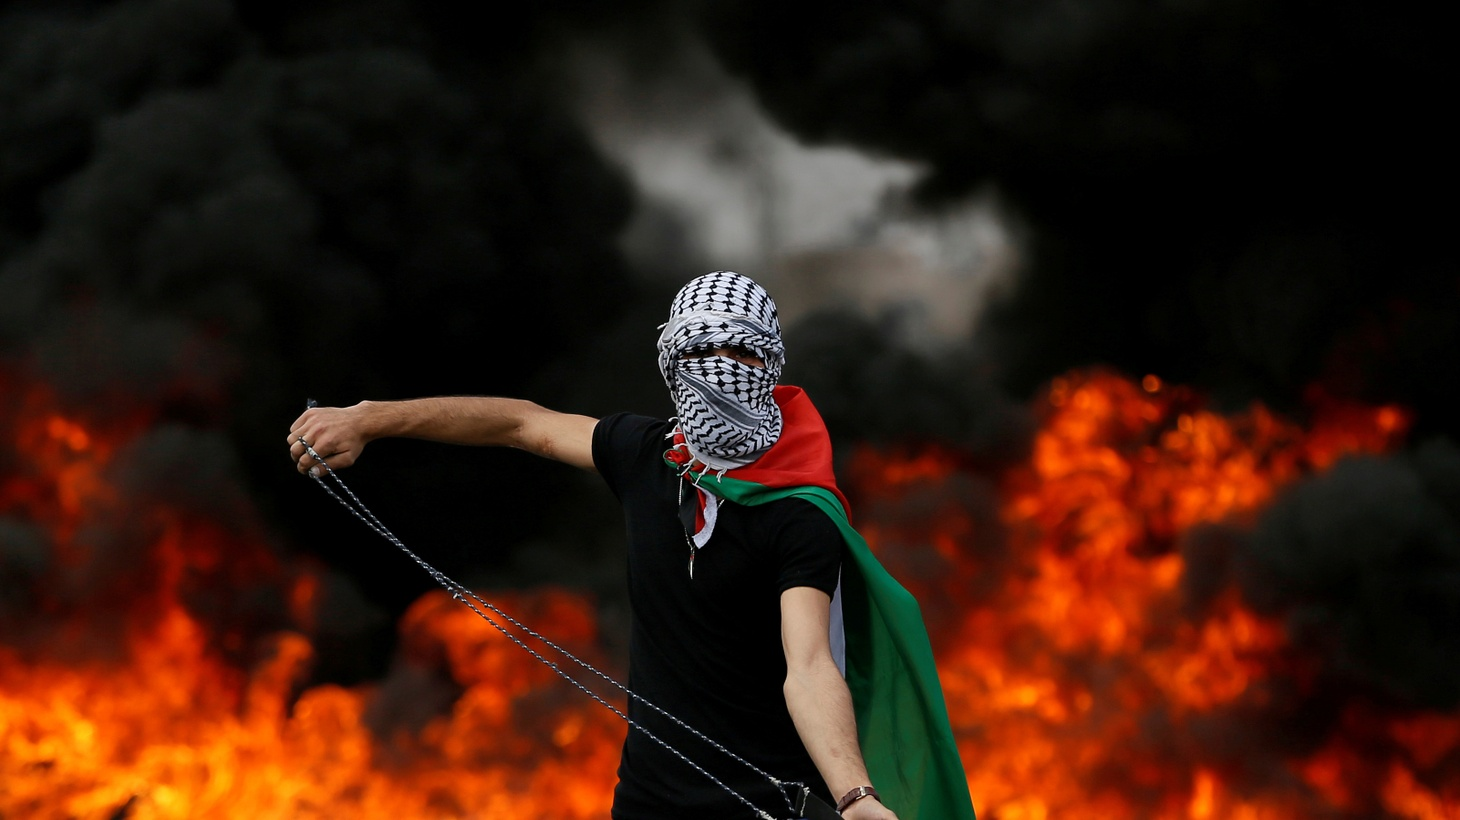 As the U.S. moved its embassy to Jerusalem, Israeli soldiers were killing unarmed protesters in Gaza. Good politics for Trump and Netanyahu, but how long will that last--especially if support for Israel becomes a partisan issue in the U.S.?